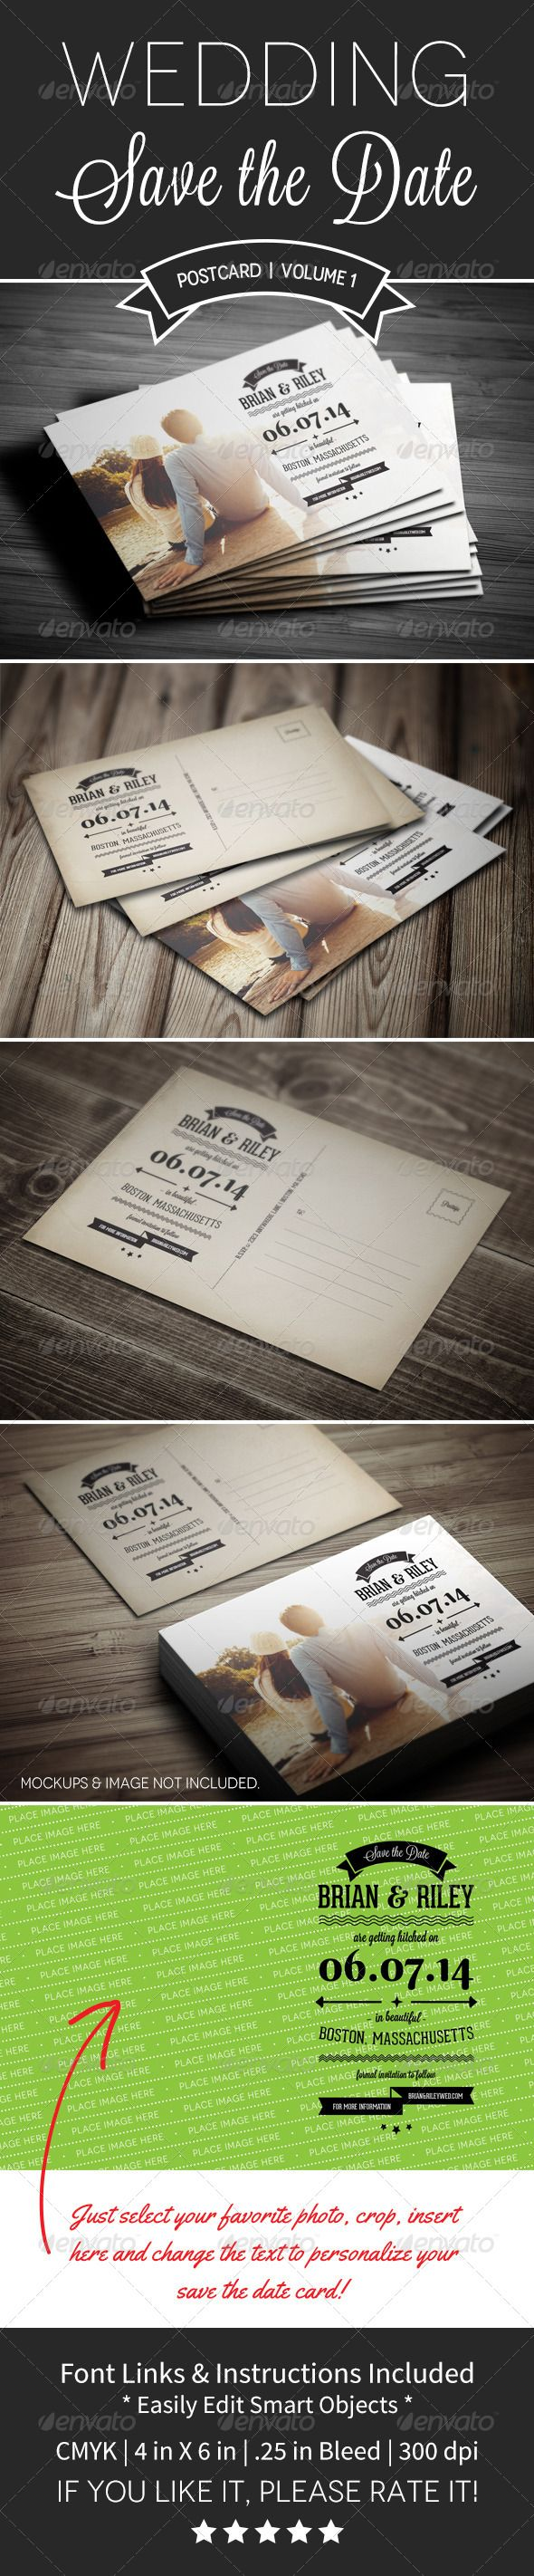 65+ Best Wedding Invitation Templates - PSD & InDesign ...